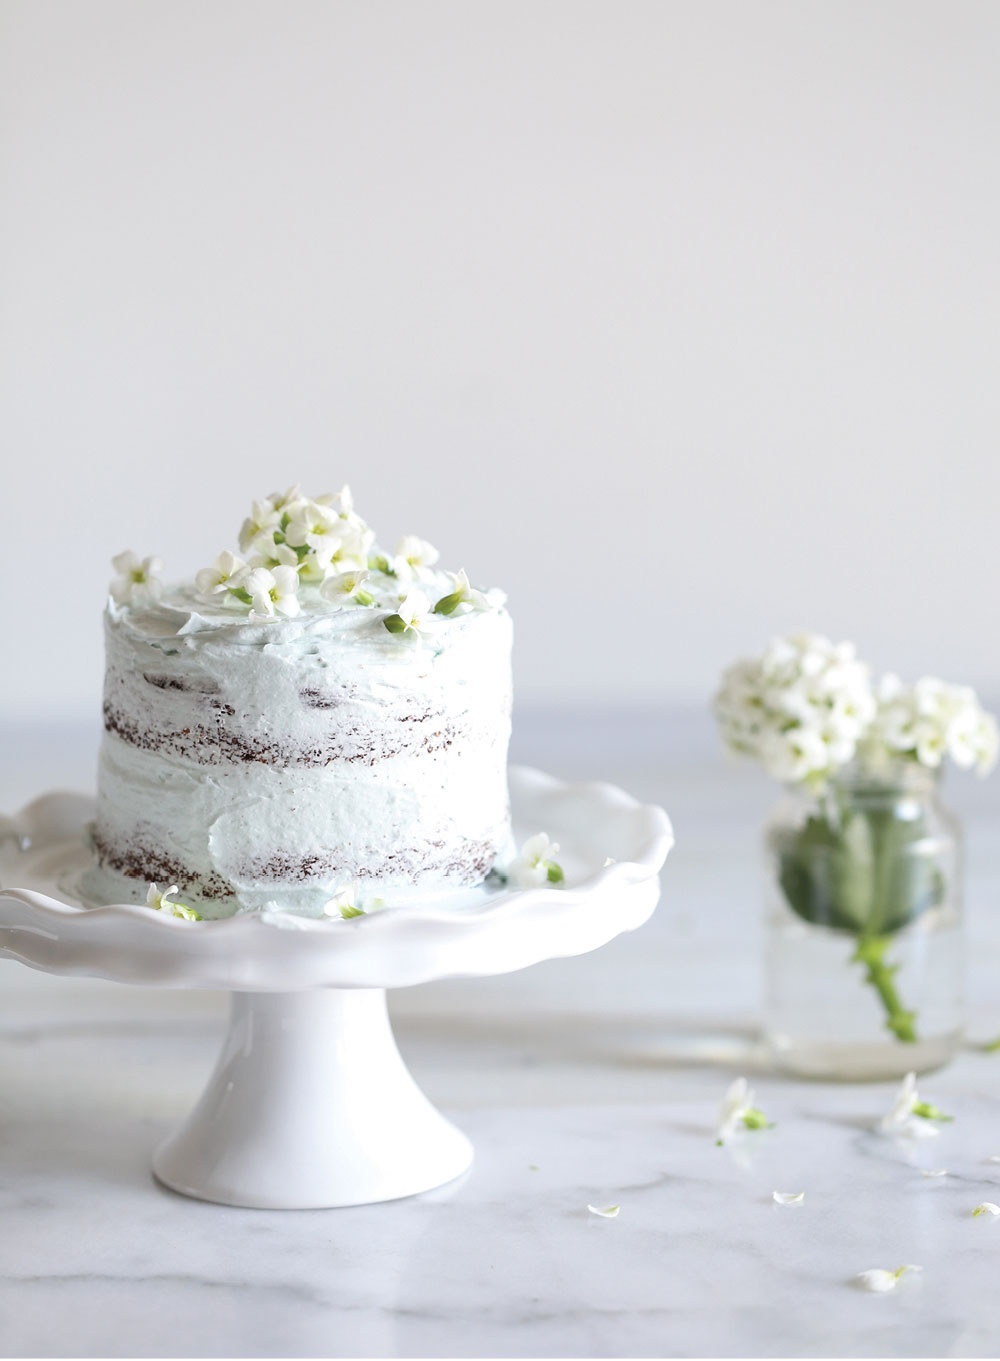 Pure-Ella-Mint-Chocolate-Cake-Gluten-free-Vegan-4